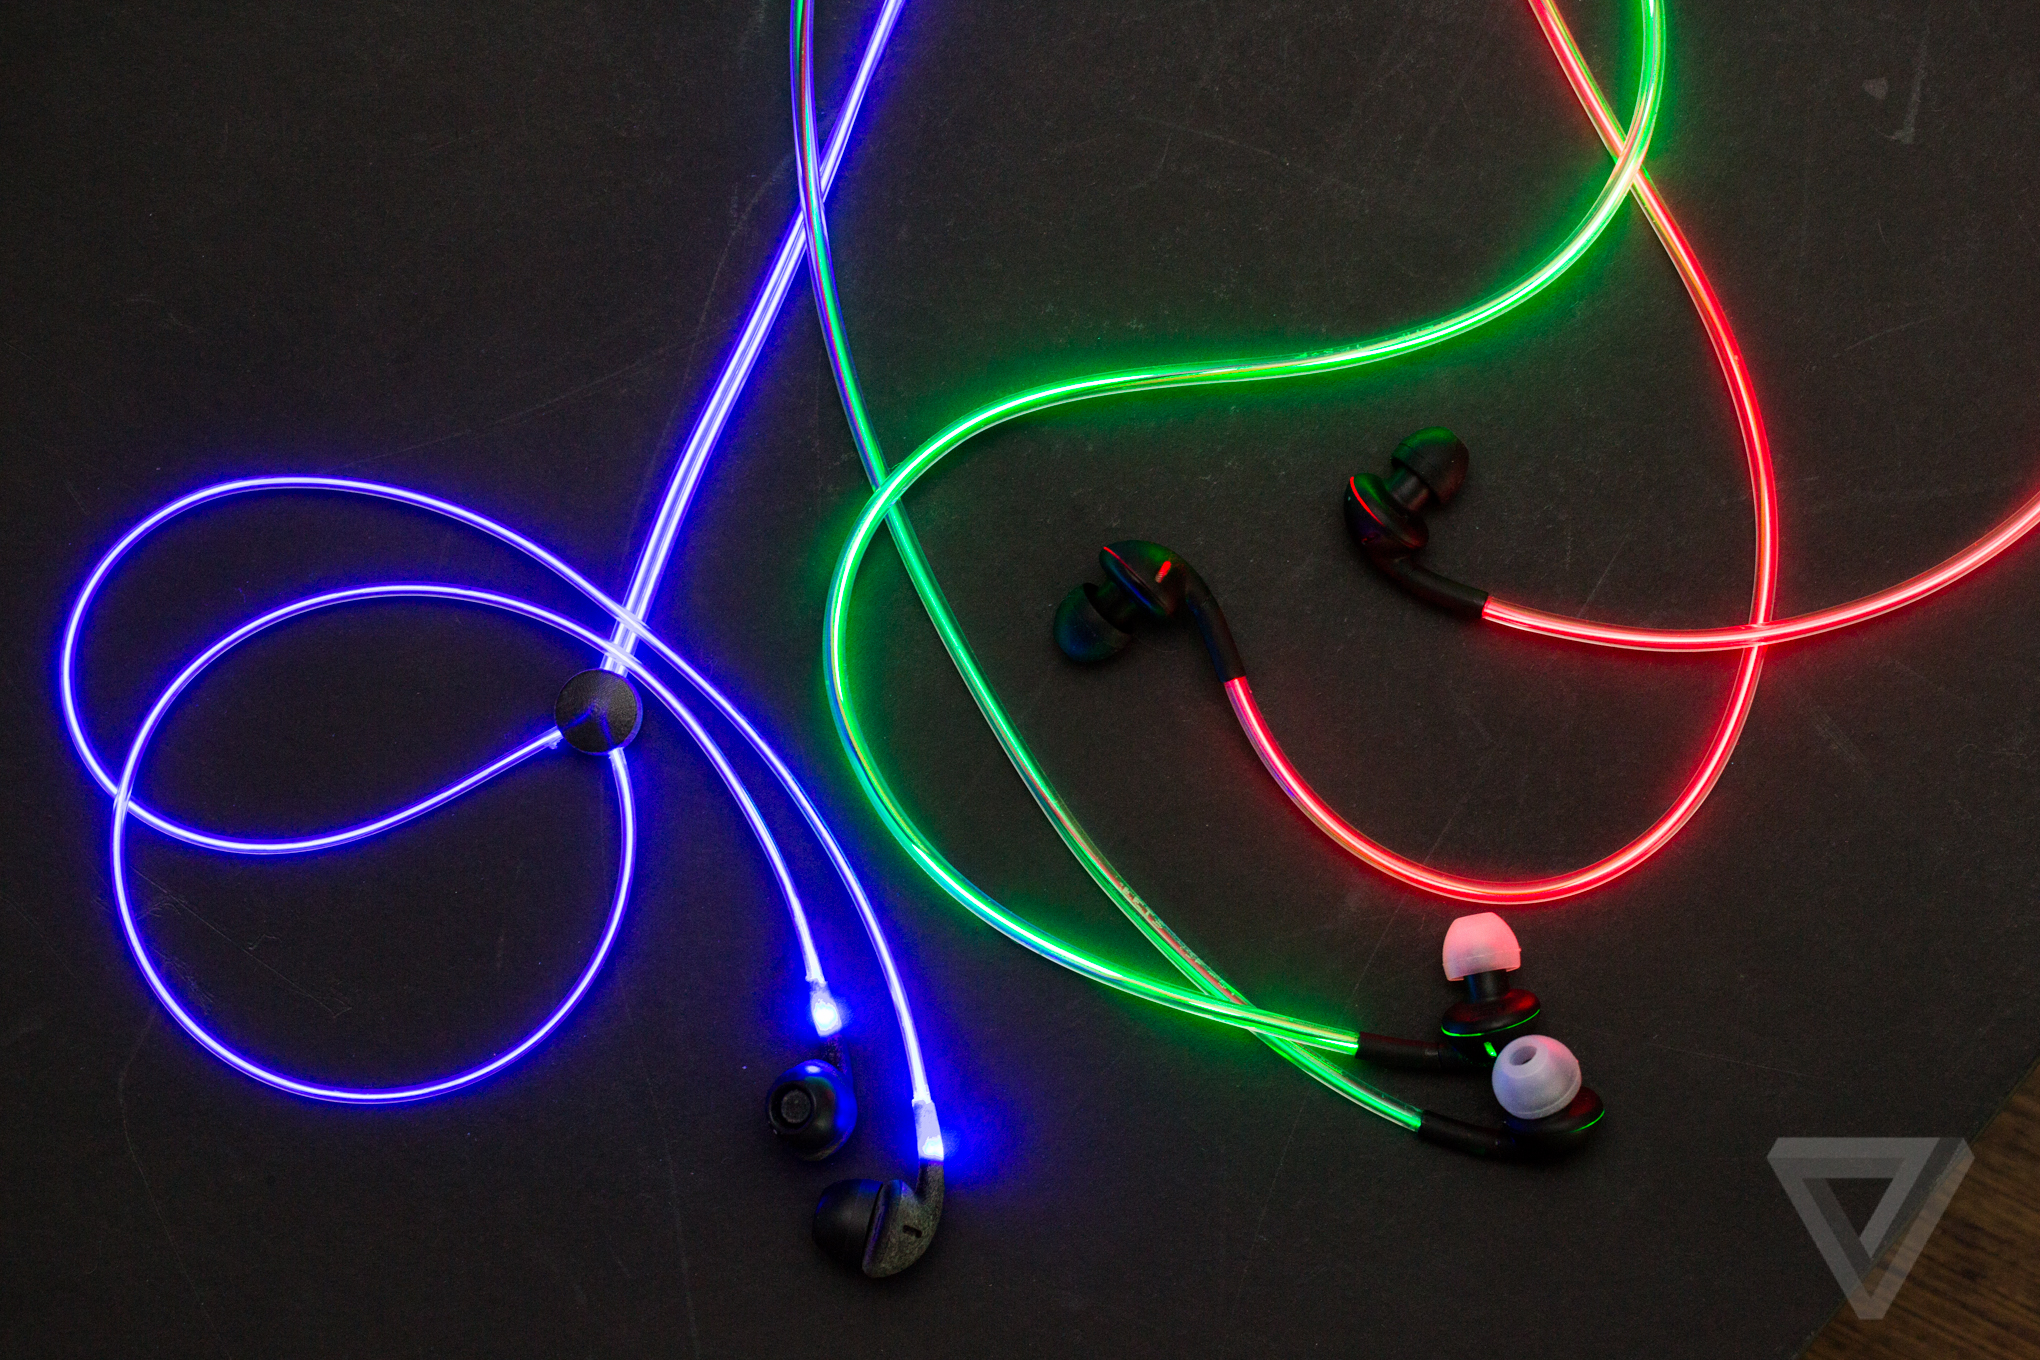 eea01763c78 Up close with Glow's crazy laser light earbuds - The Verge